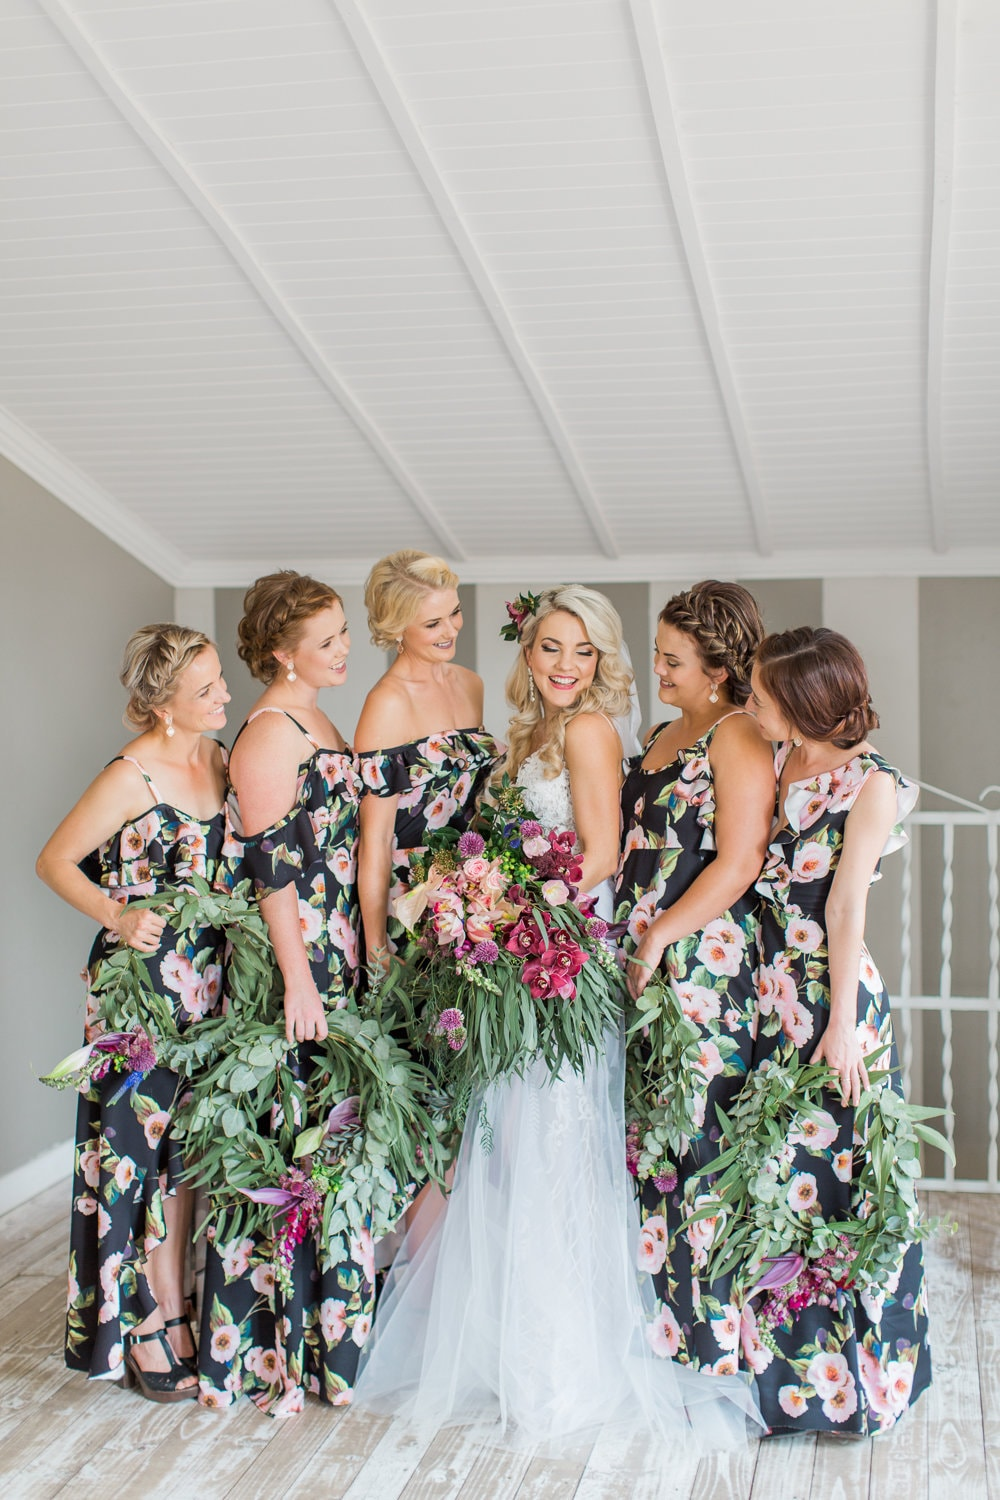 Floral Bridesmaid Dresses | Image: Grace Studios